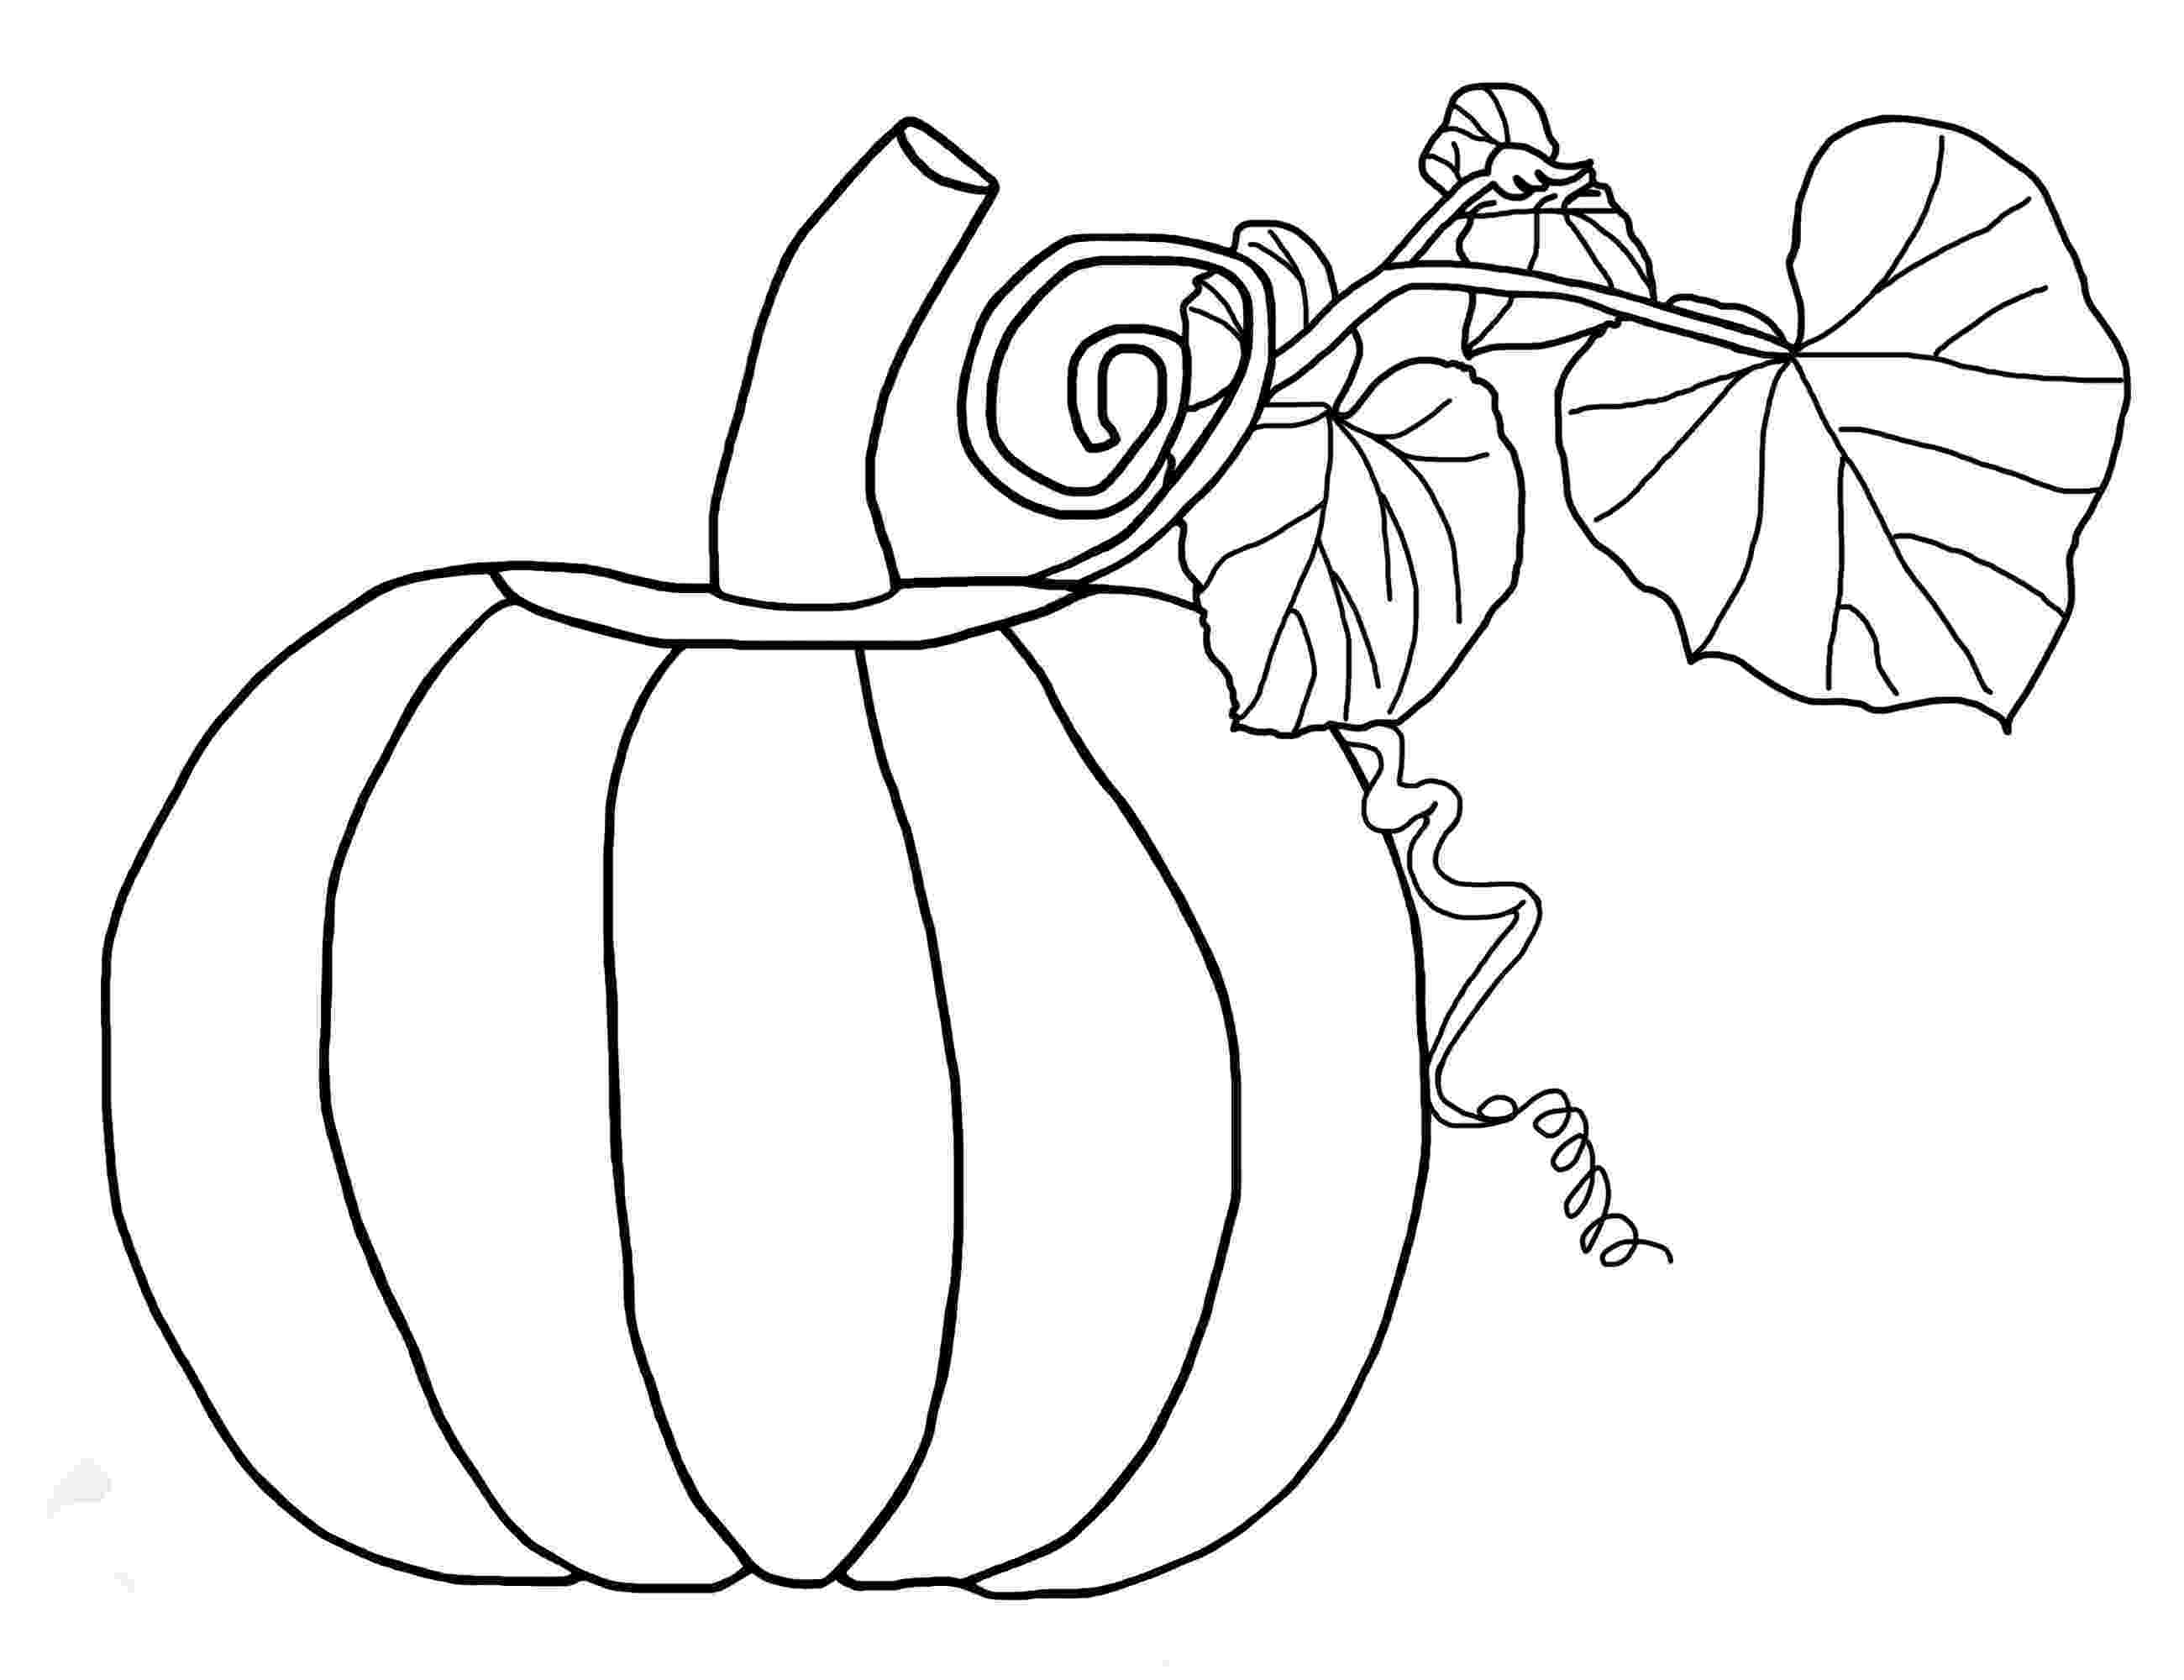 coloring pages for pumpkins creatively christy halloween craft 4 halloween coloring coloring pages pumpkins for